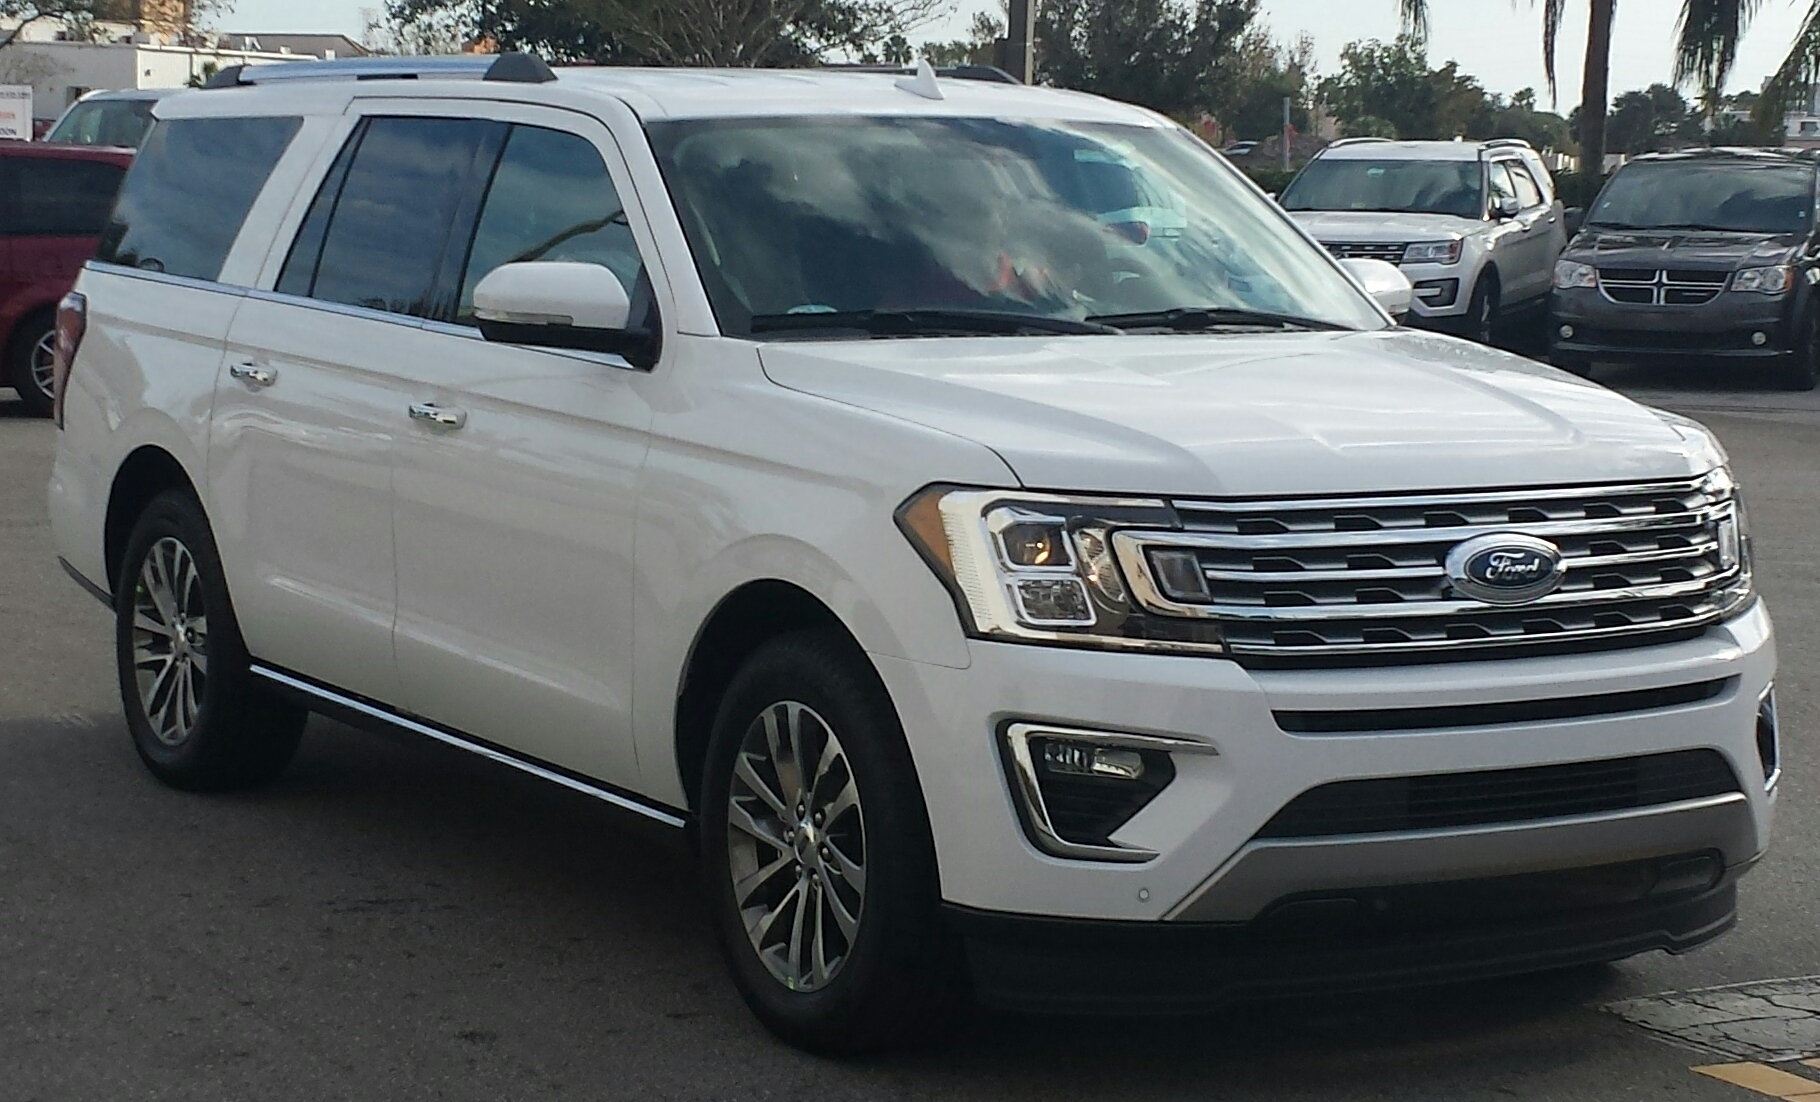 '18 Ford Expedition Max.jpg